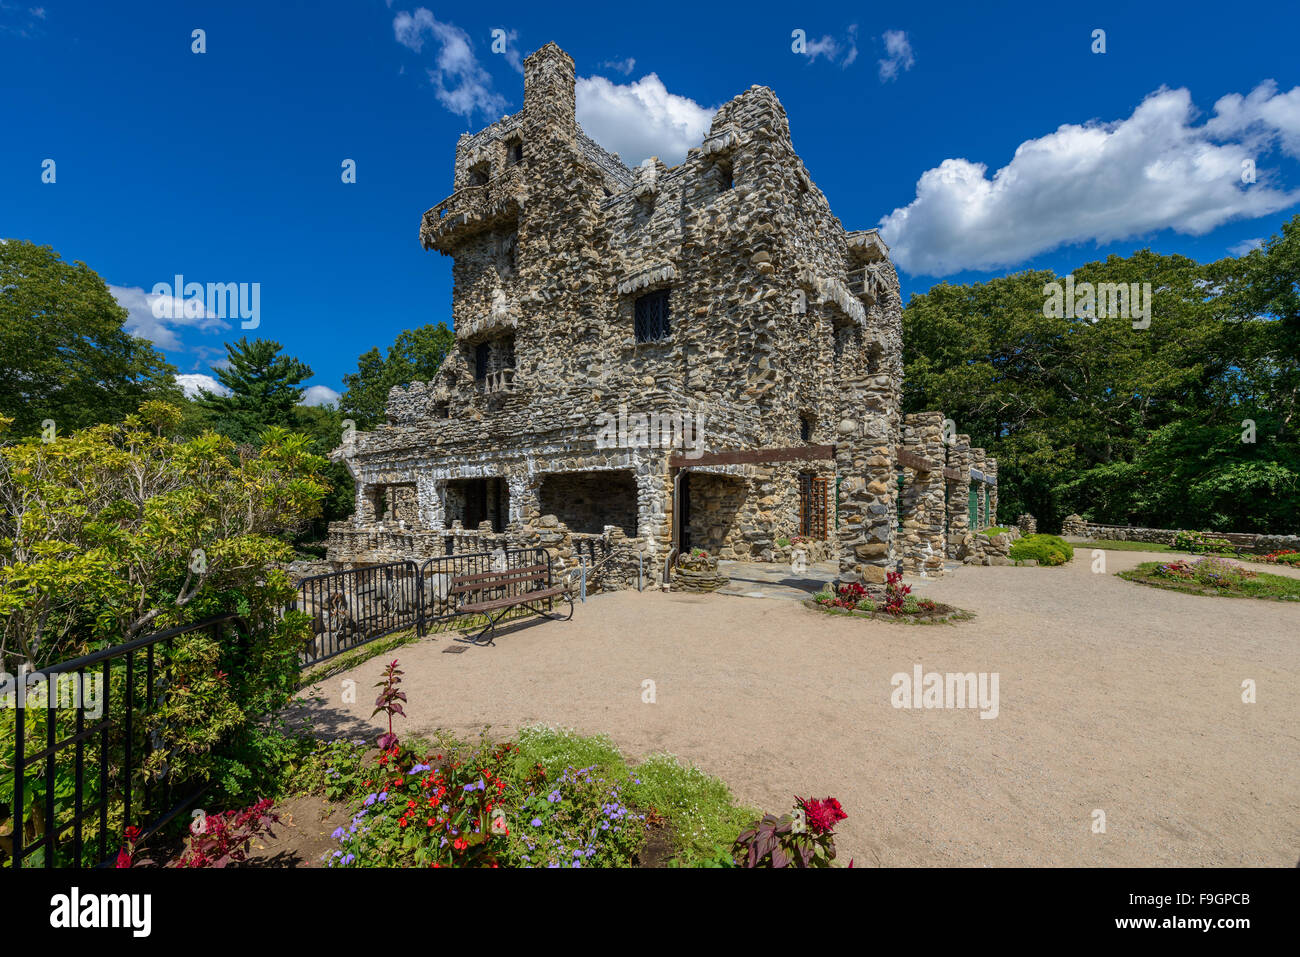 Gillette Castle State Park, East Haddam, Connecticut - Stock Image